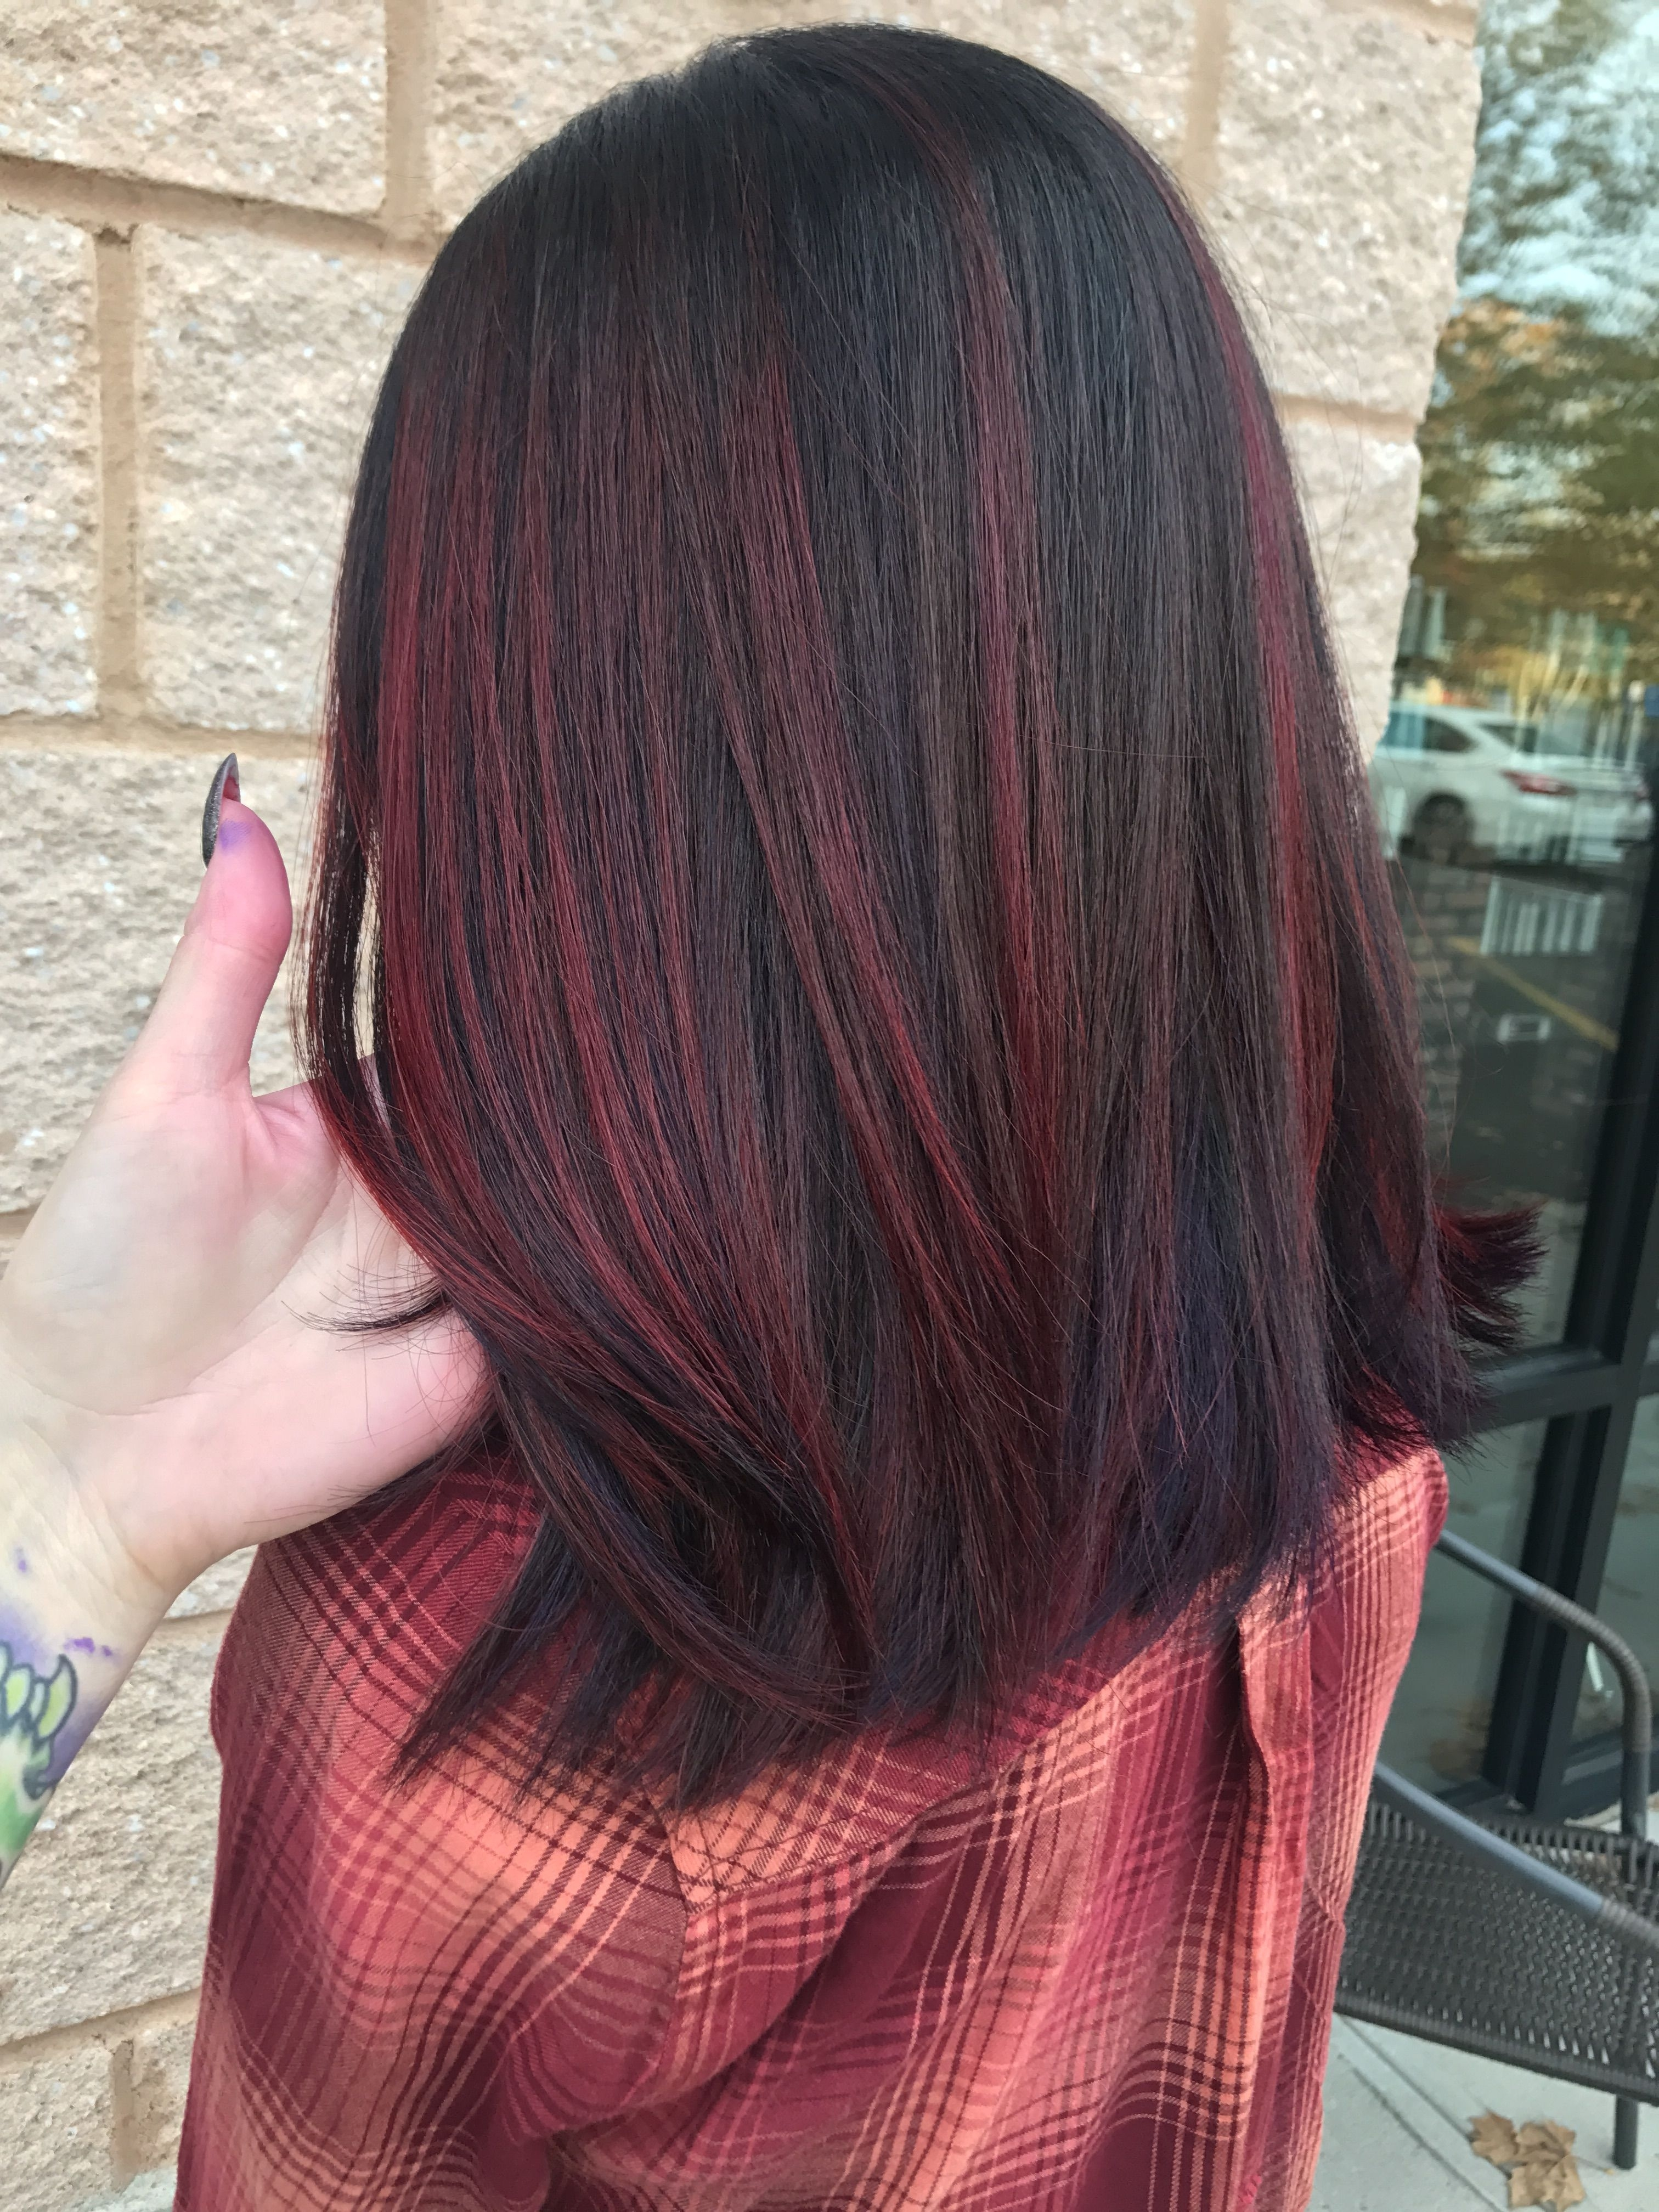 Pin By Veerle Bonne On Hair In 2019 | Dyed Hair, Balayage Hair, Hair inside Asian Hair With Red Highlights